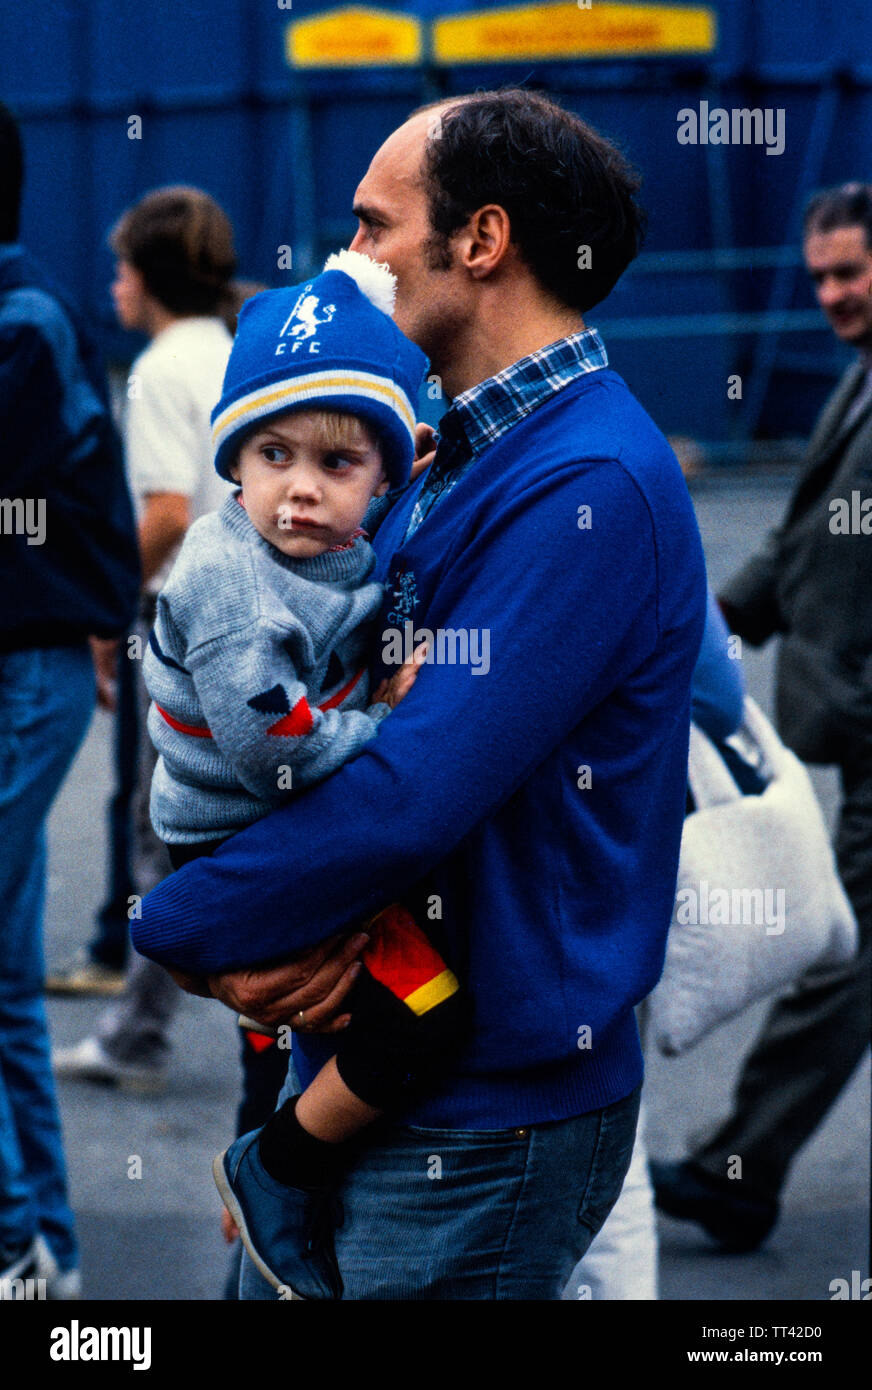 Chelsea FC supporters at Chelsea V Millwall football match 4 February 1985 at Chelsea, London England. 4 Feb 1985 Stock Photo